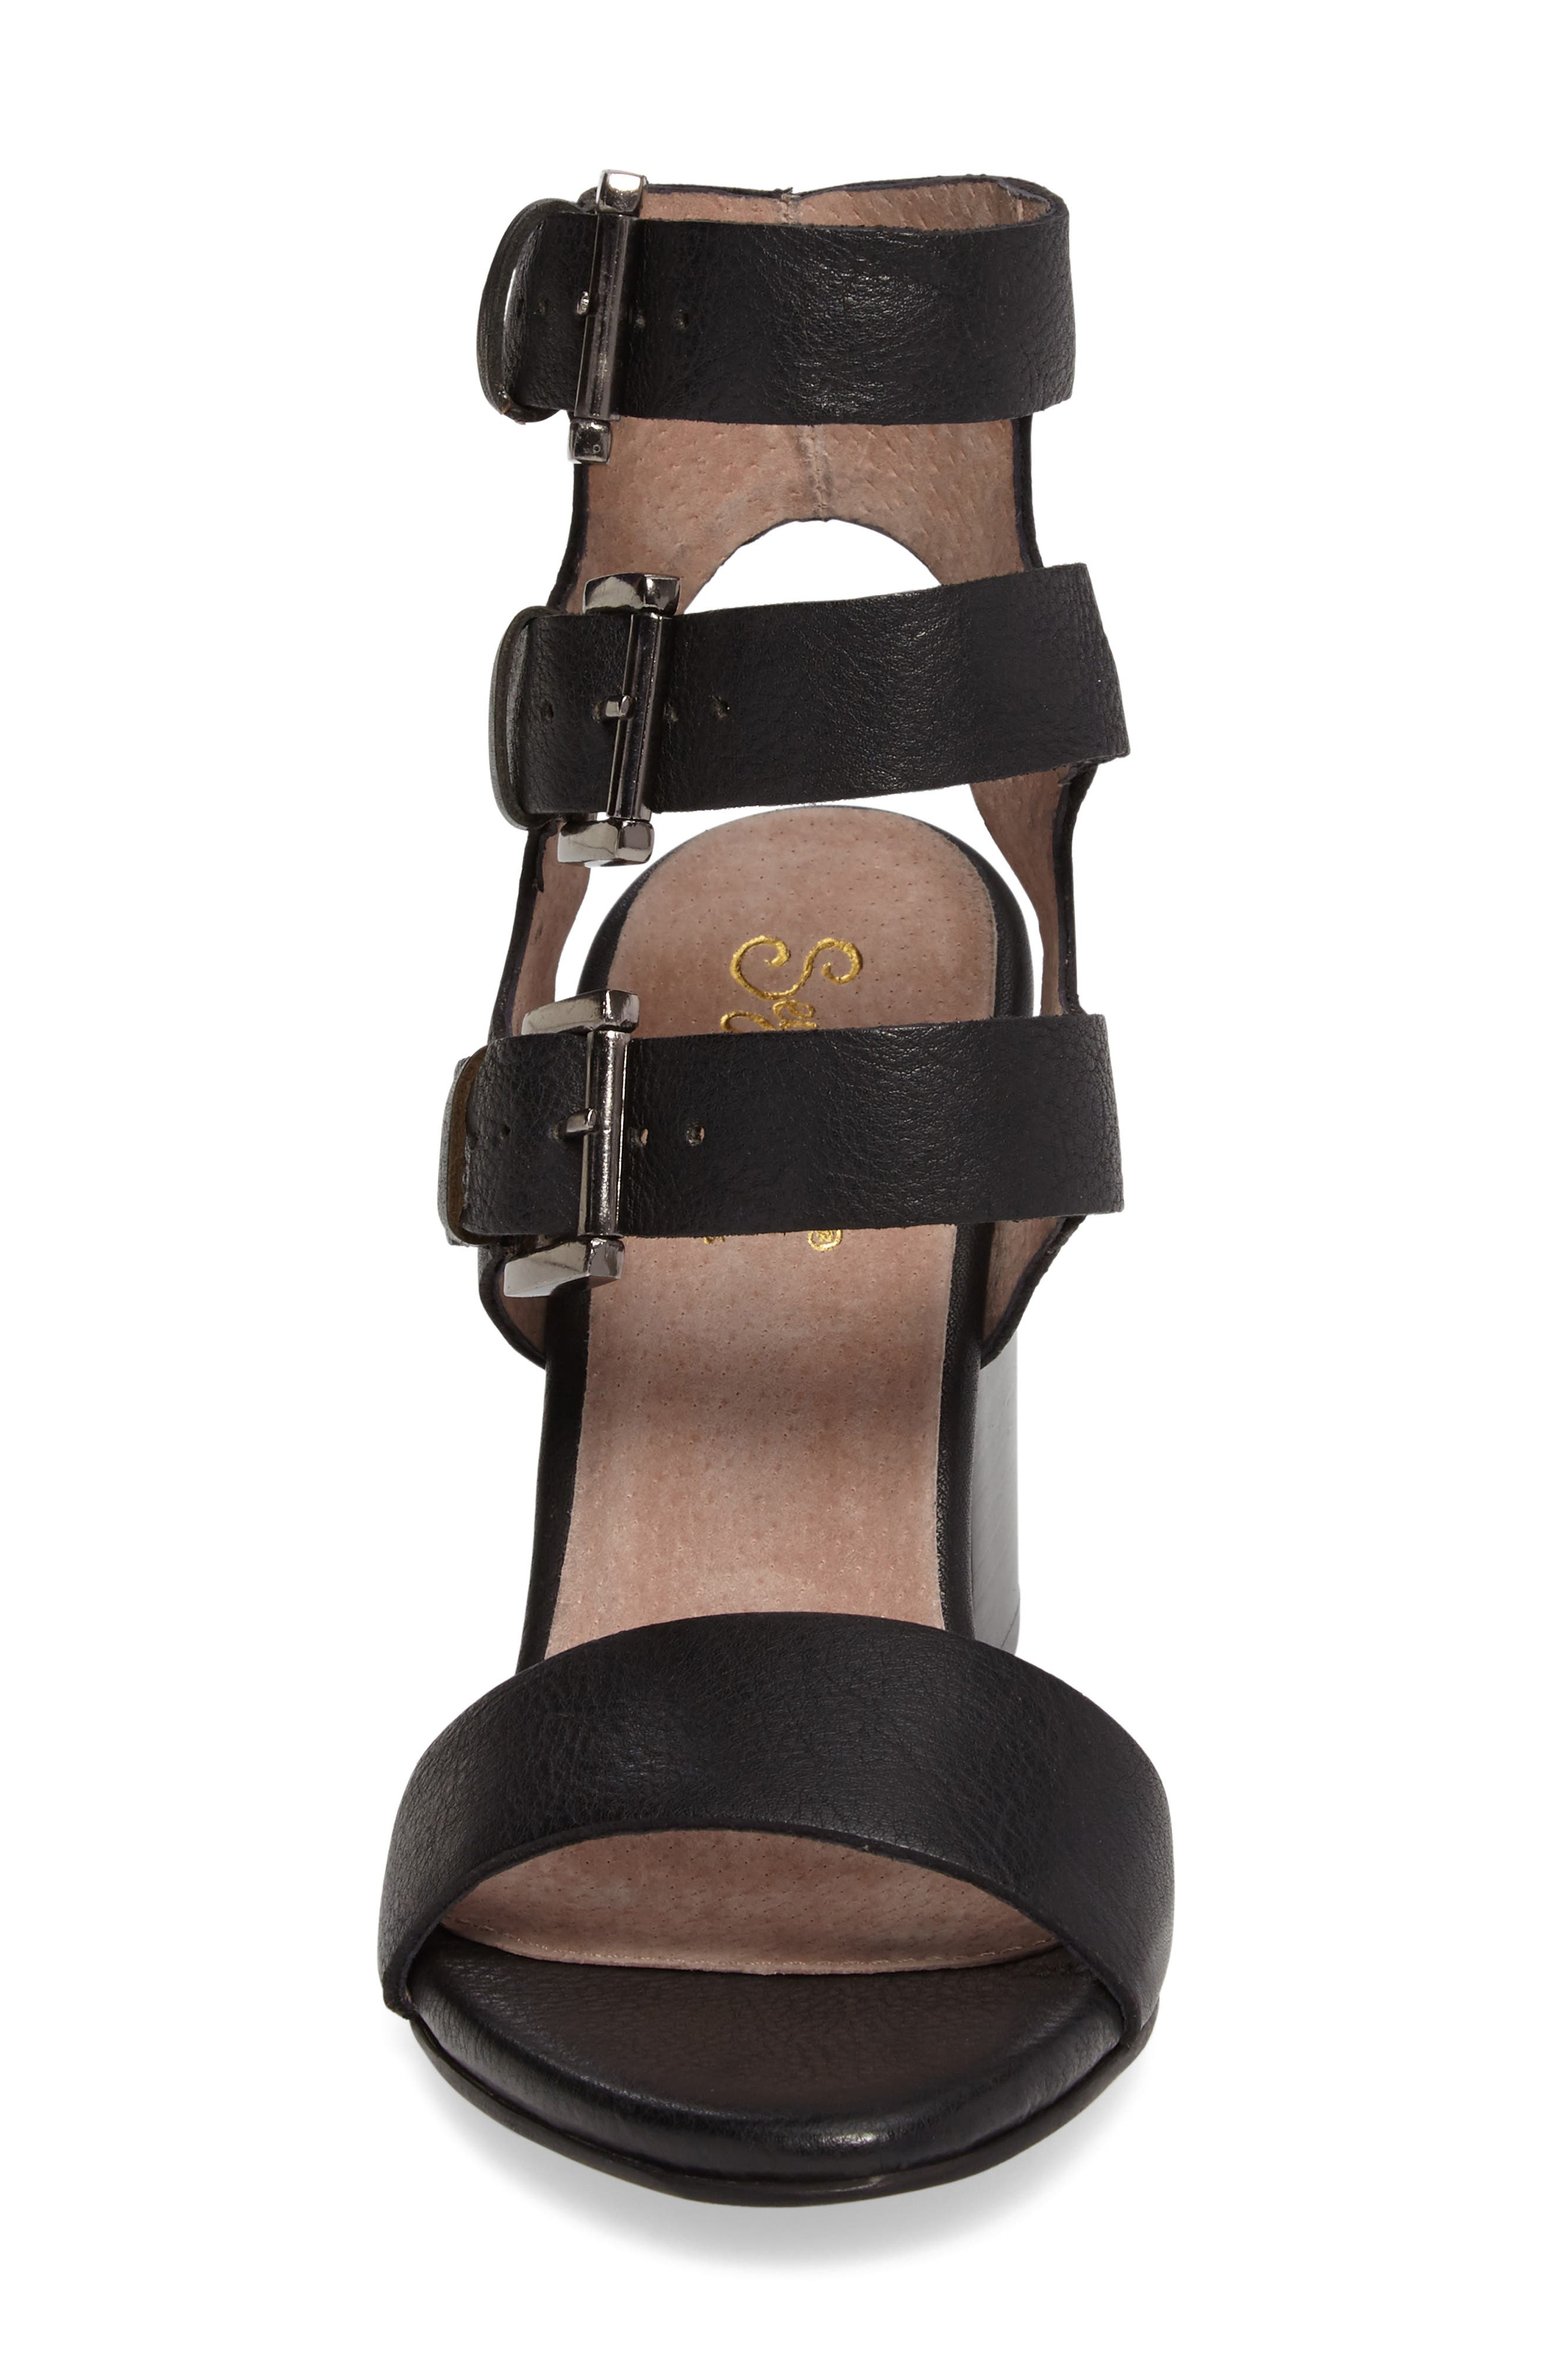 Dilly Dally Sandal,                             Alternate thumbnail 4, color,                             001